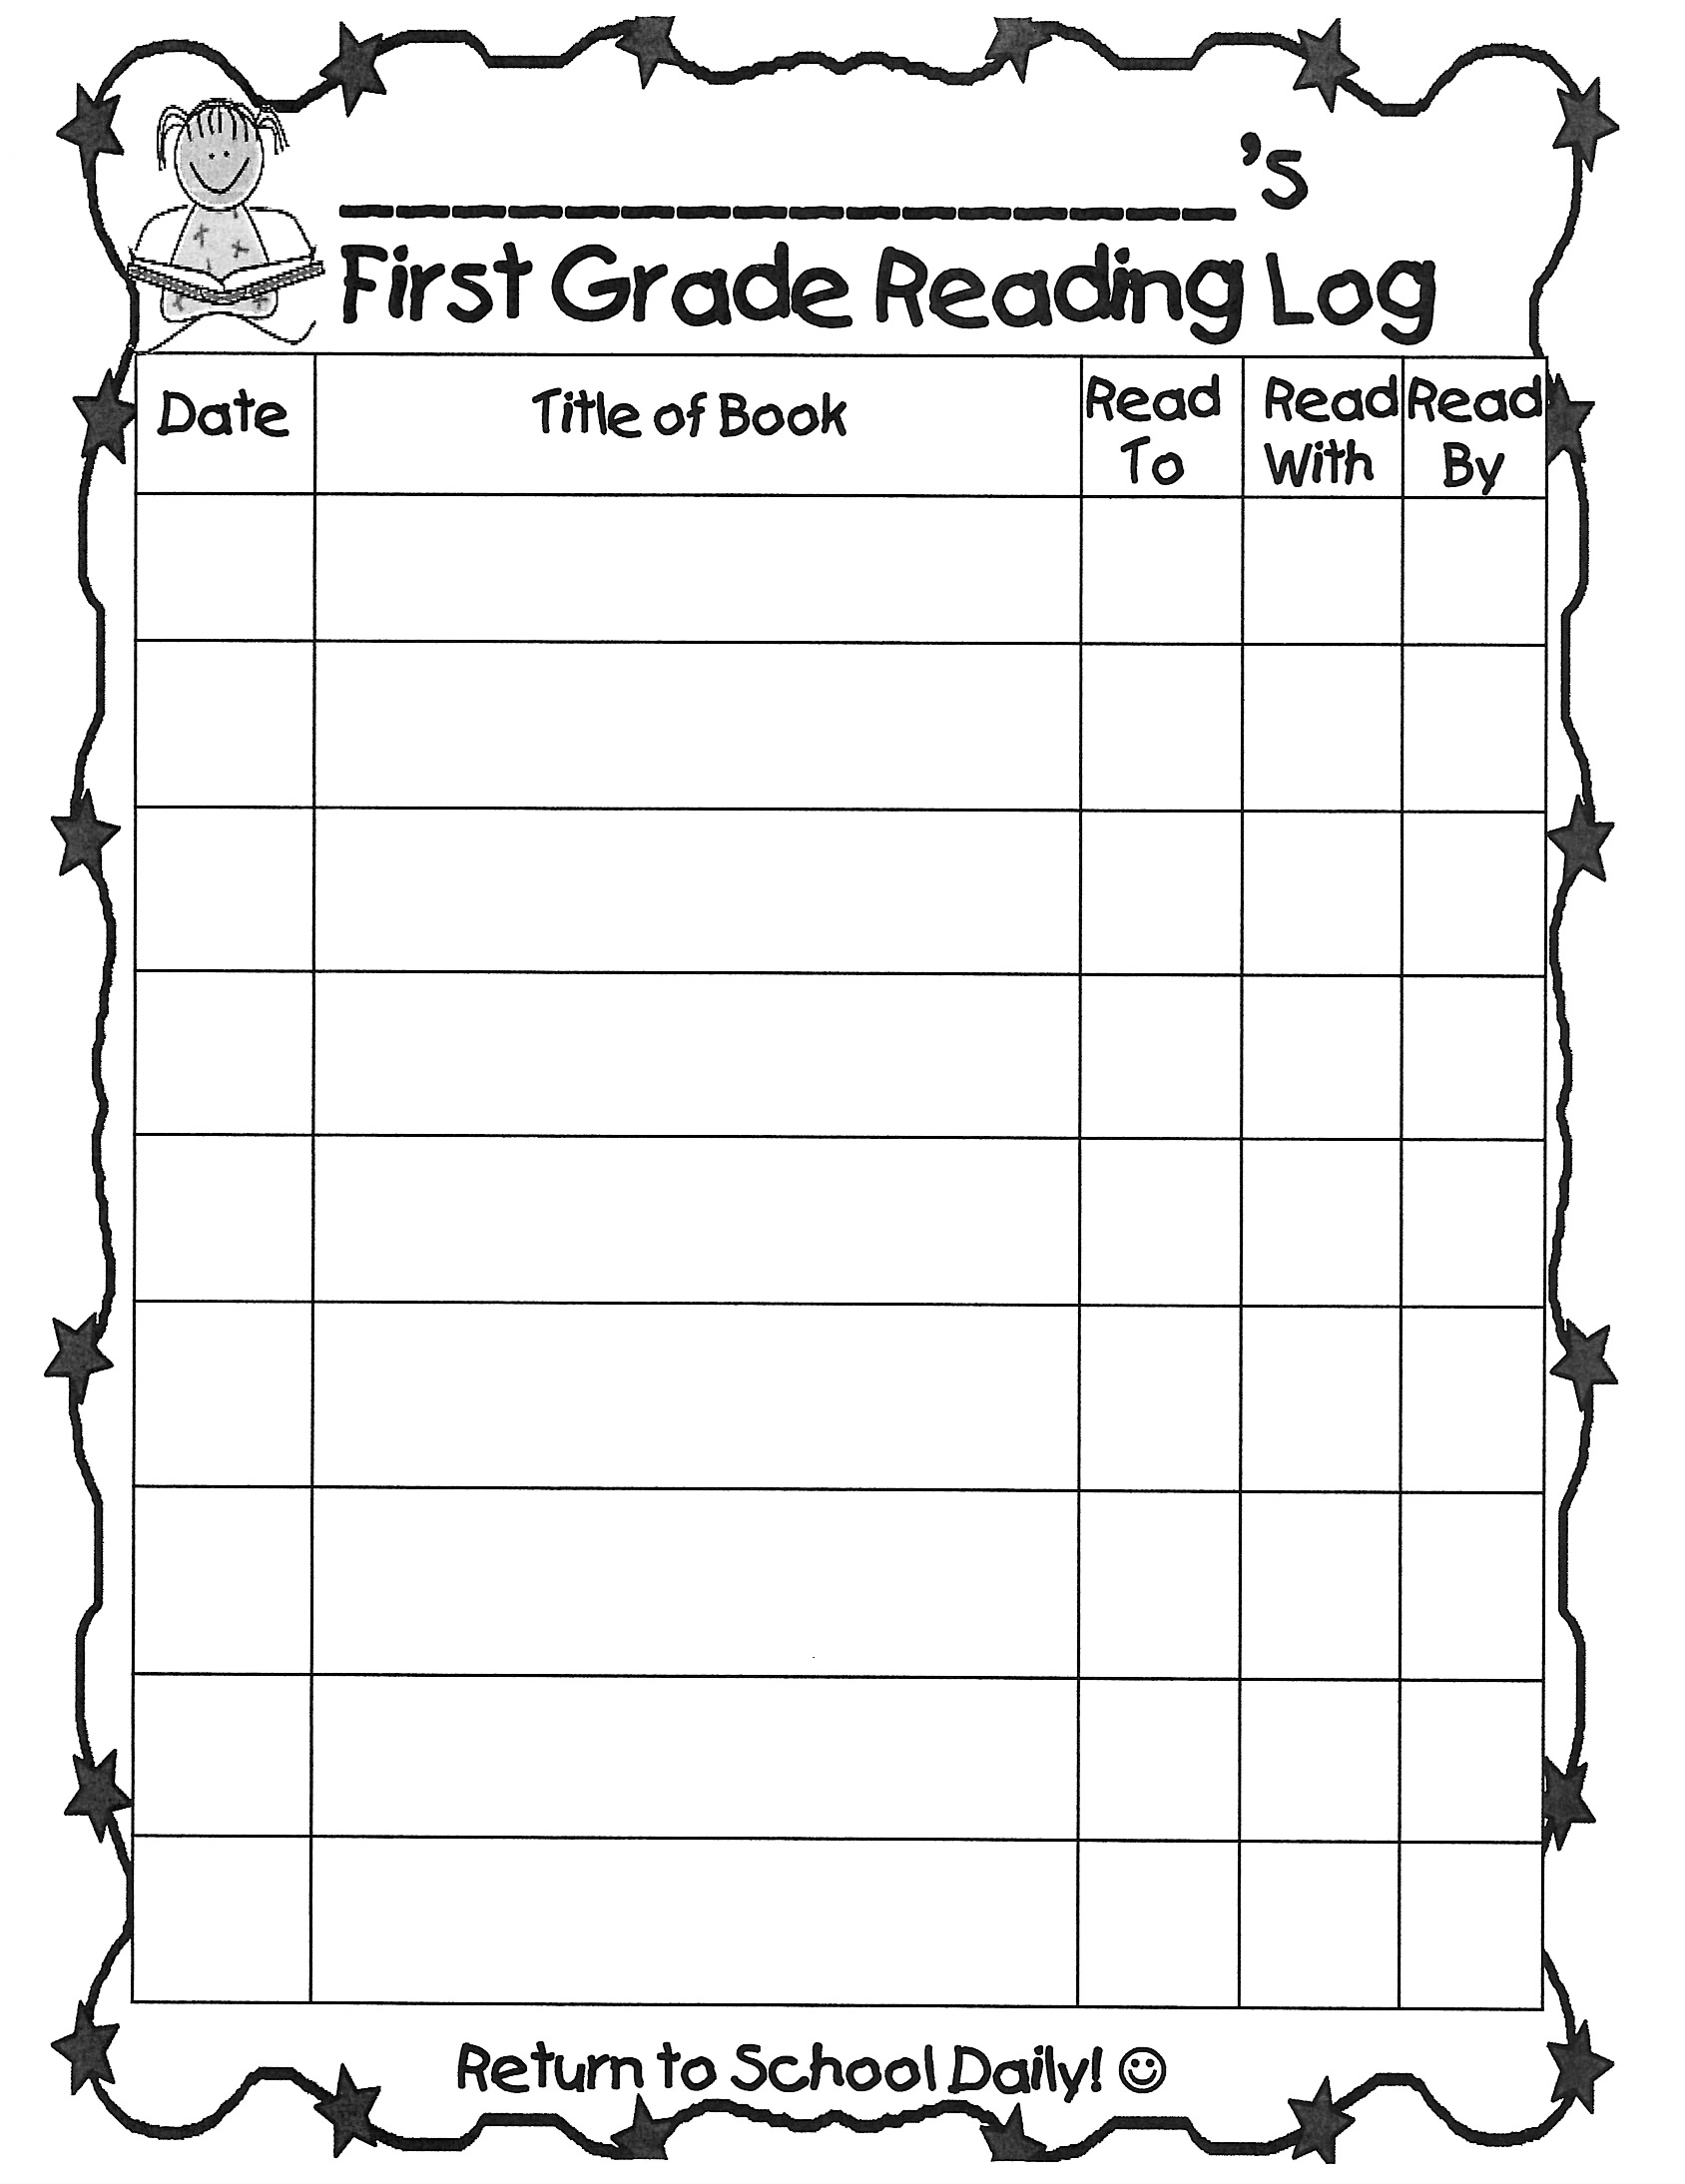 Worksheet 1 Grade Reading farelli annette grade 1 teacher reading log form first log